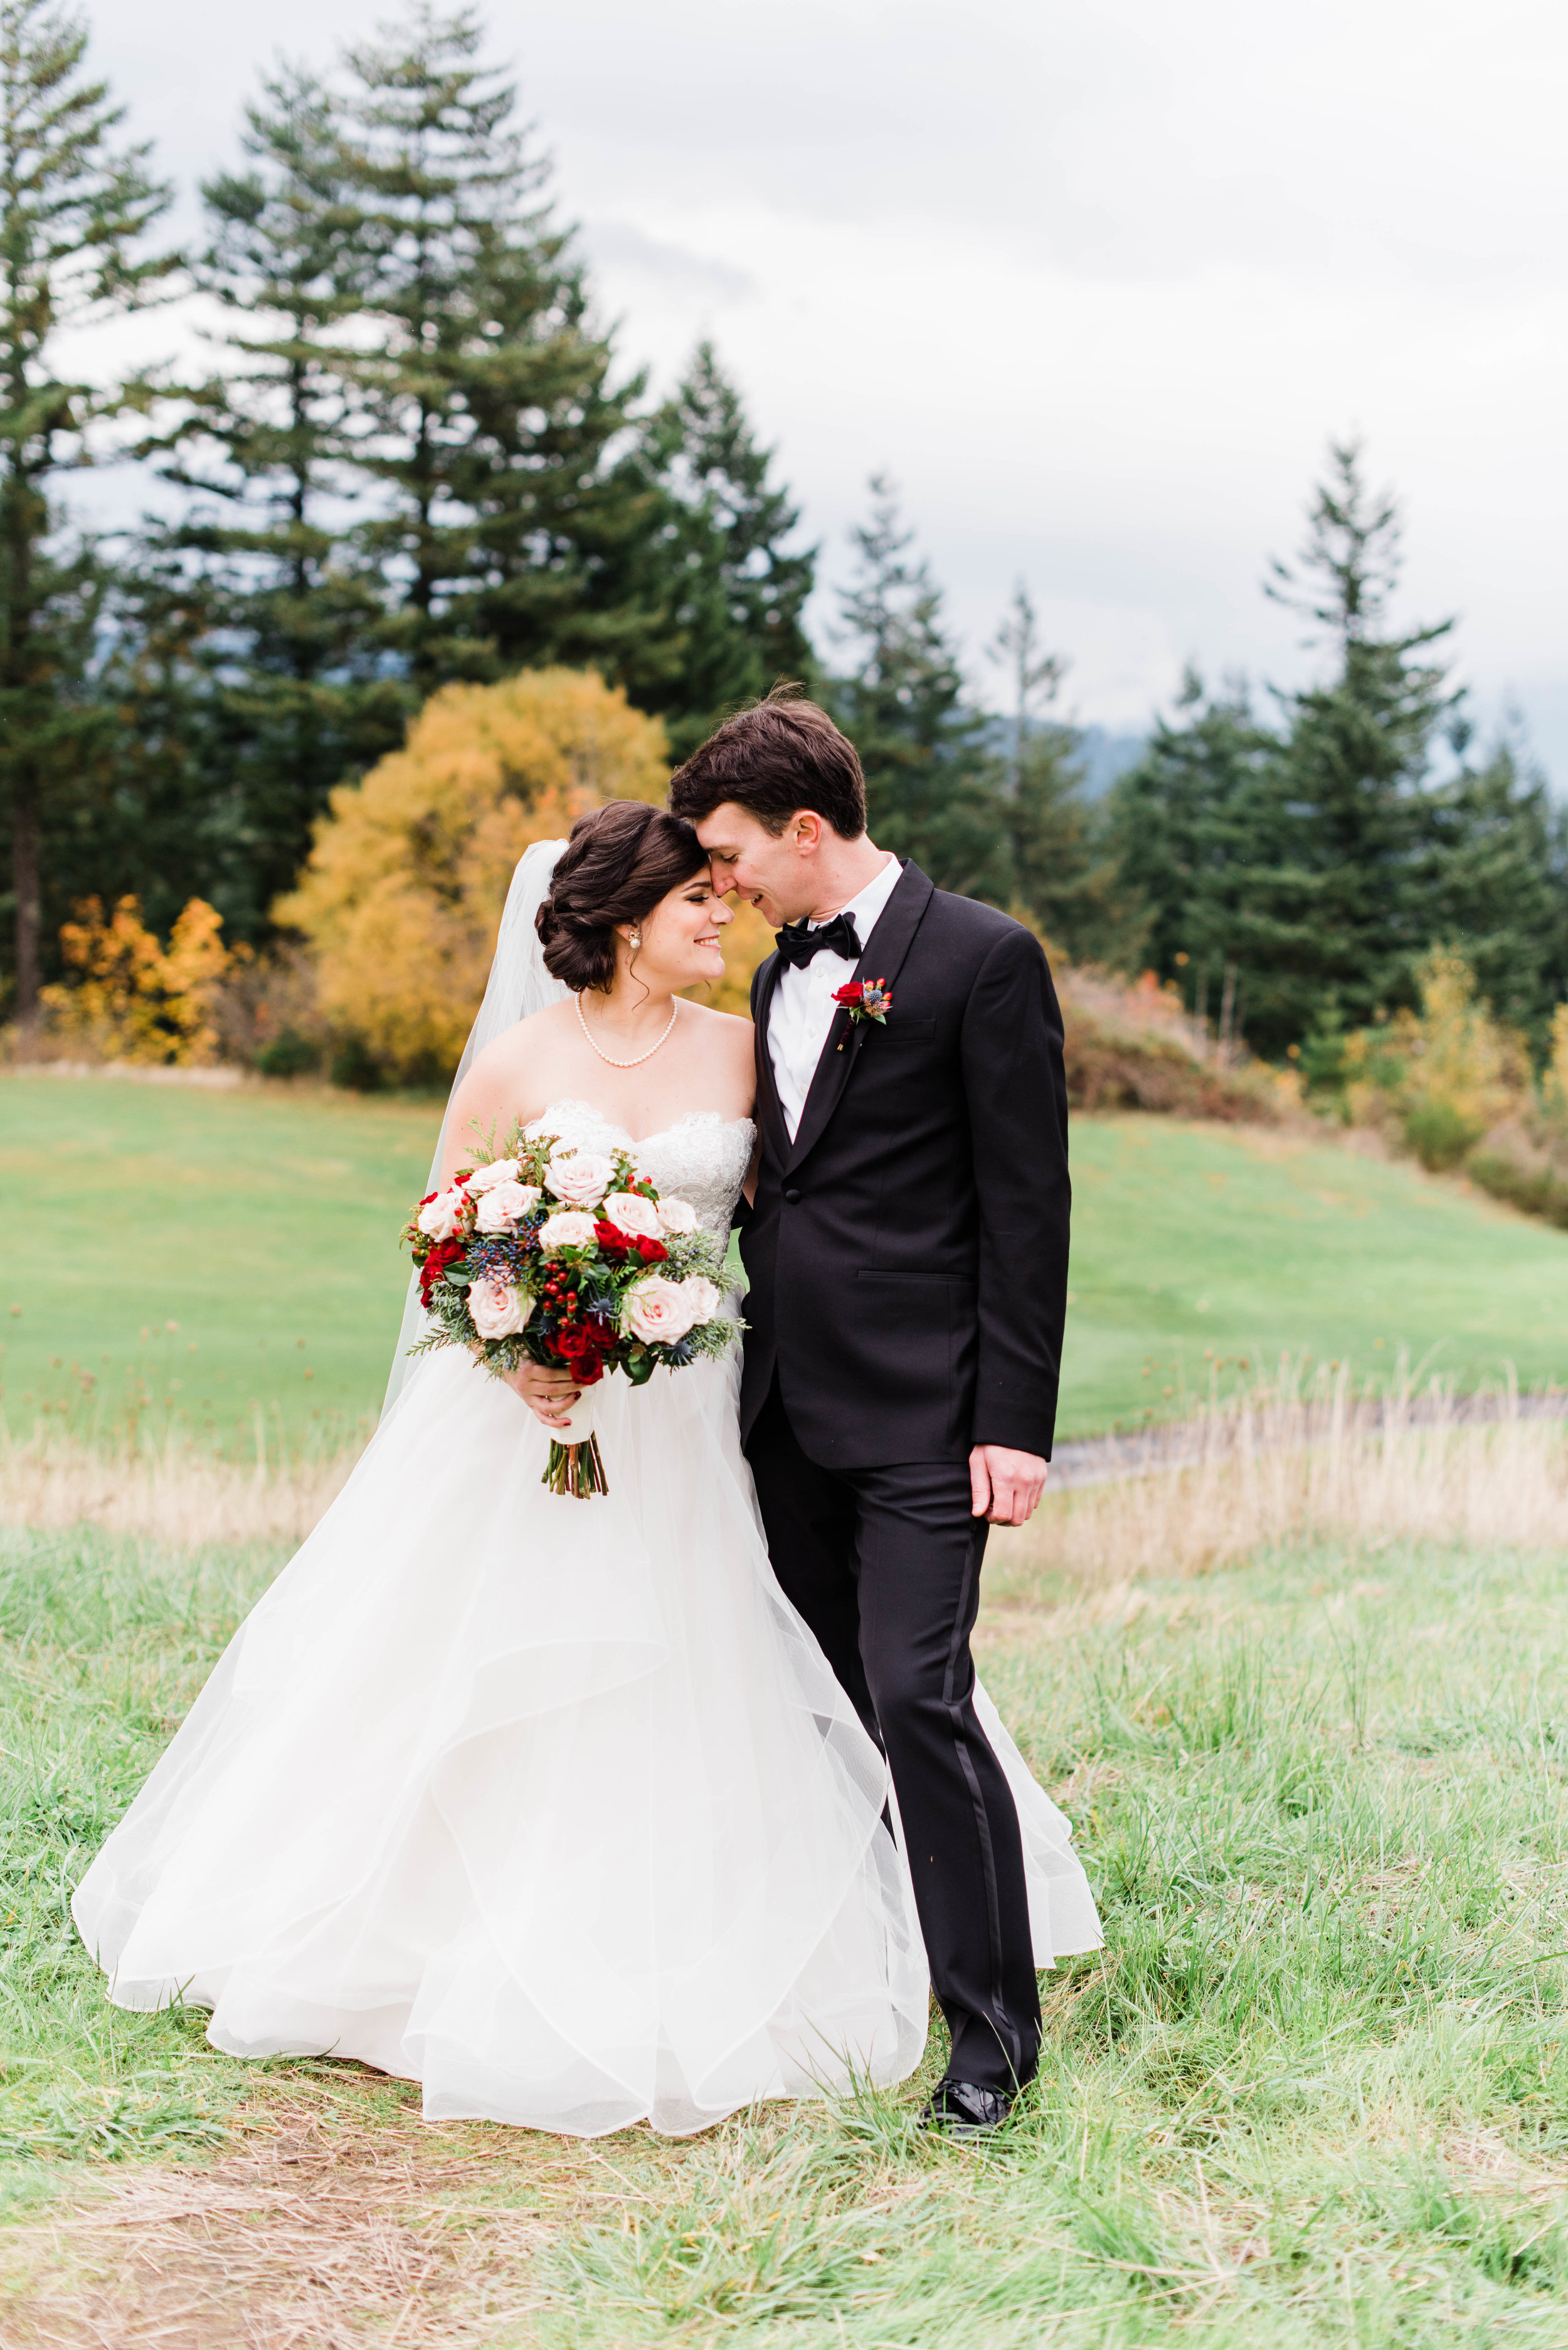 A Skamania Lodge Outdoor Wedding - The Overwhelmed Bride Wedding Ideas Inspiration Blog